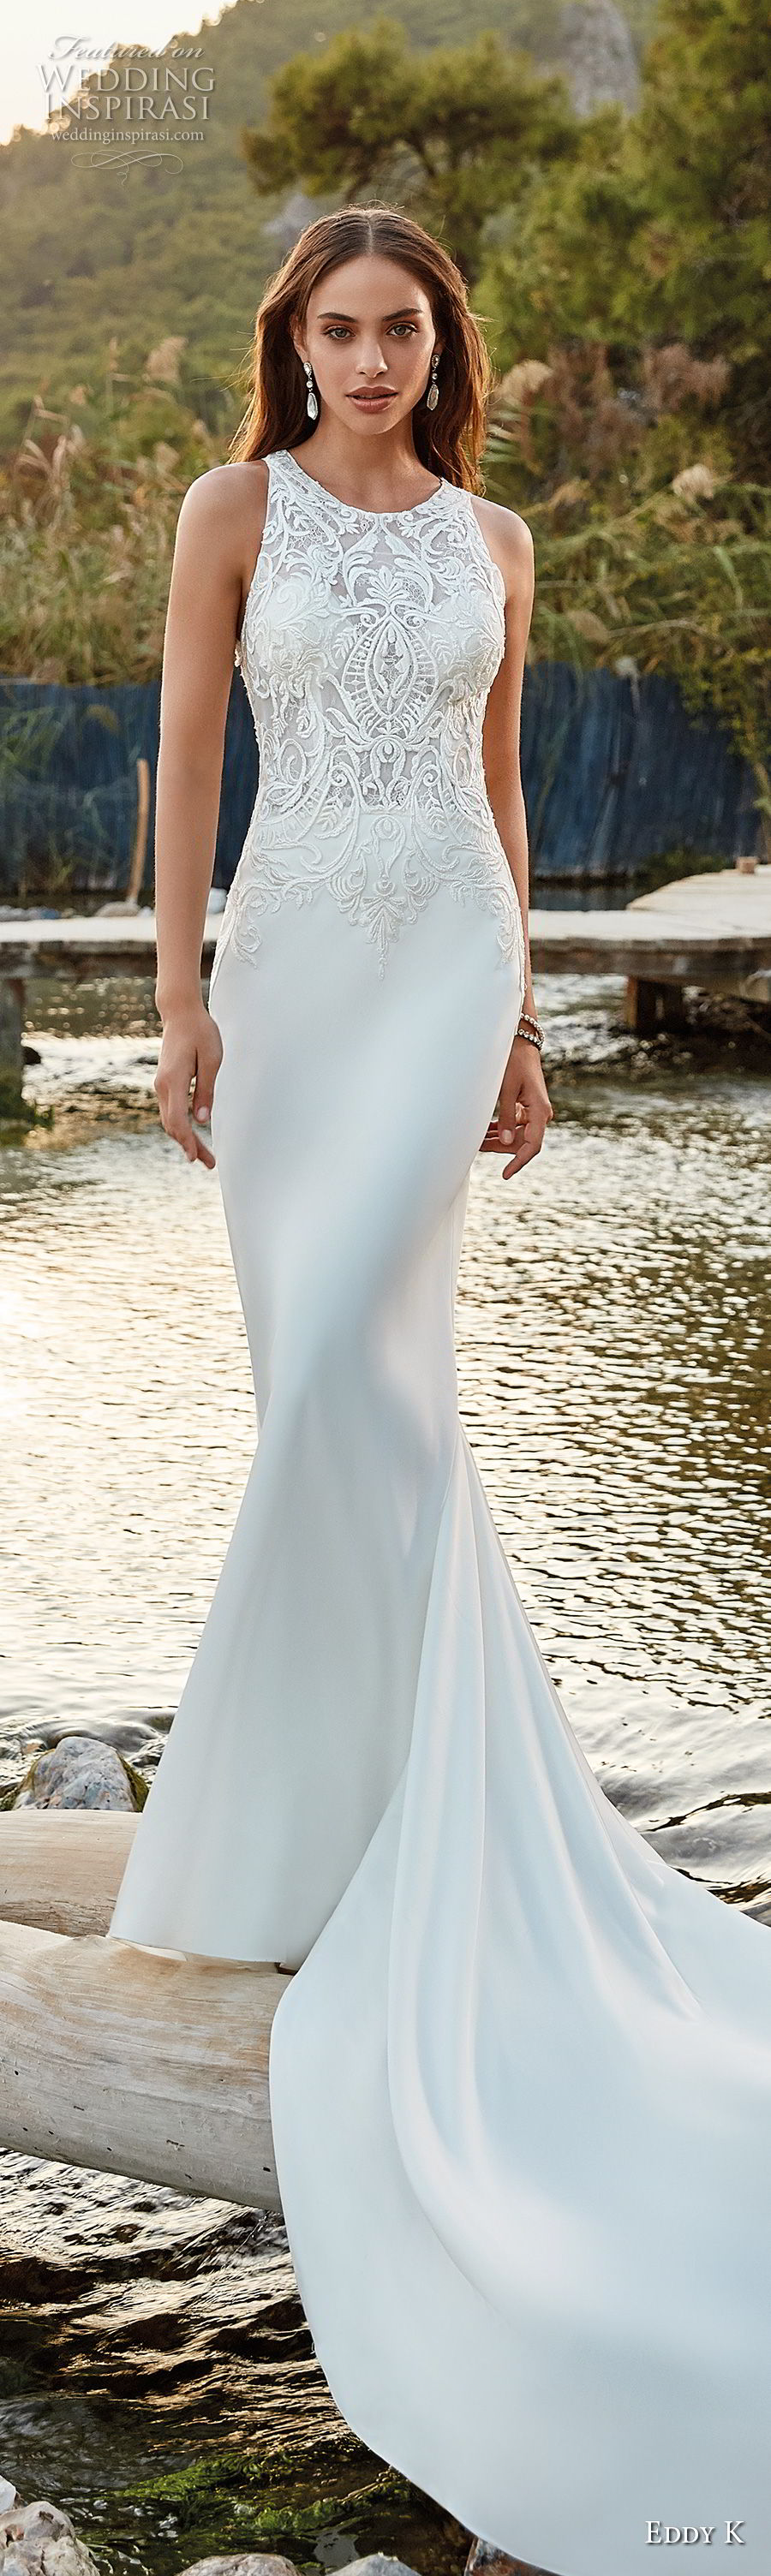 Unique Bridal Gown Resale Pictures - All Wedding Dresses ...